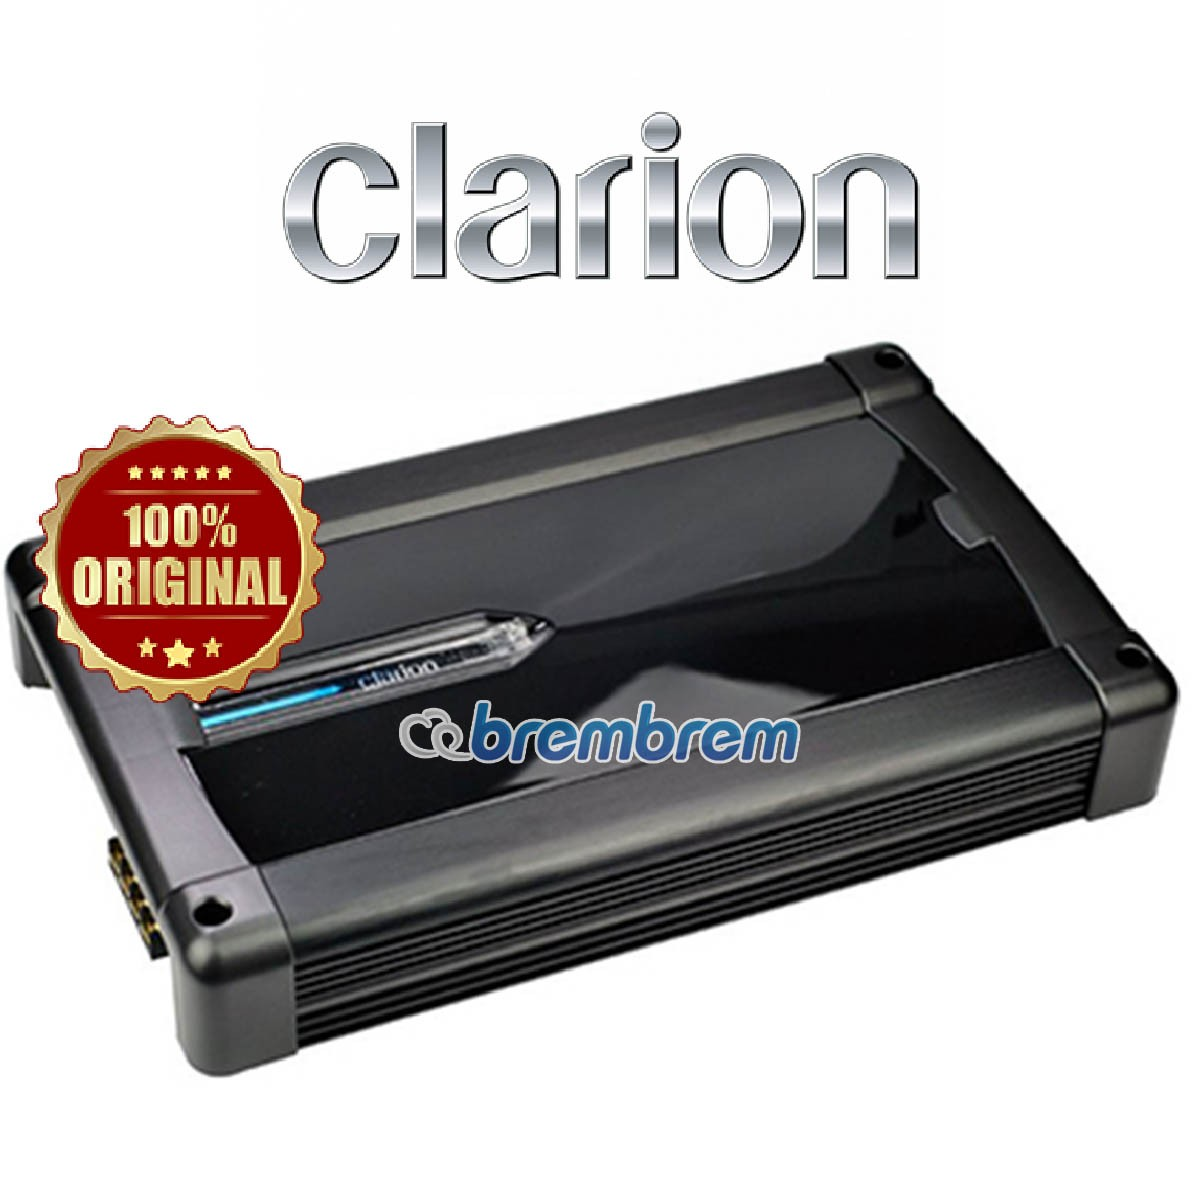 CLARION XR 2420 - POWER 4 CHANNEL